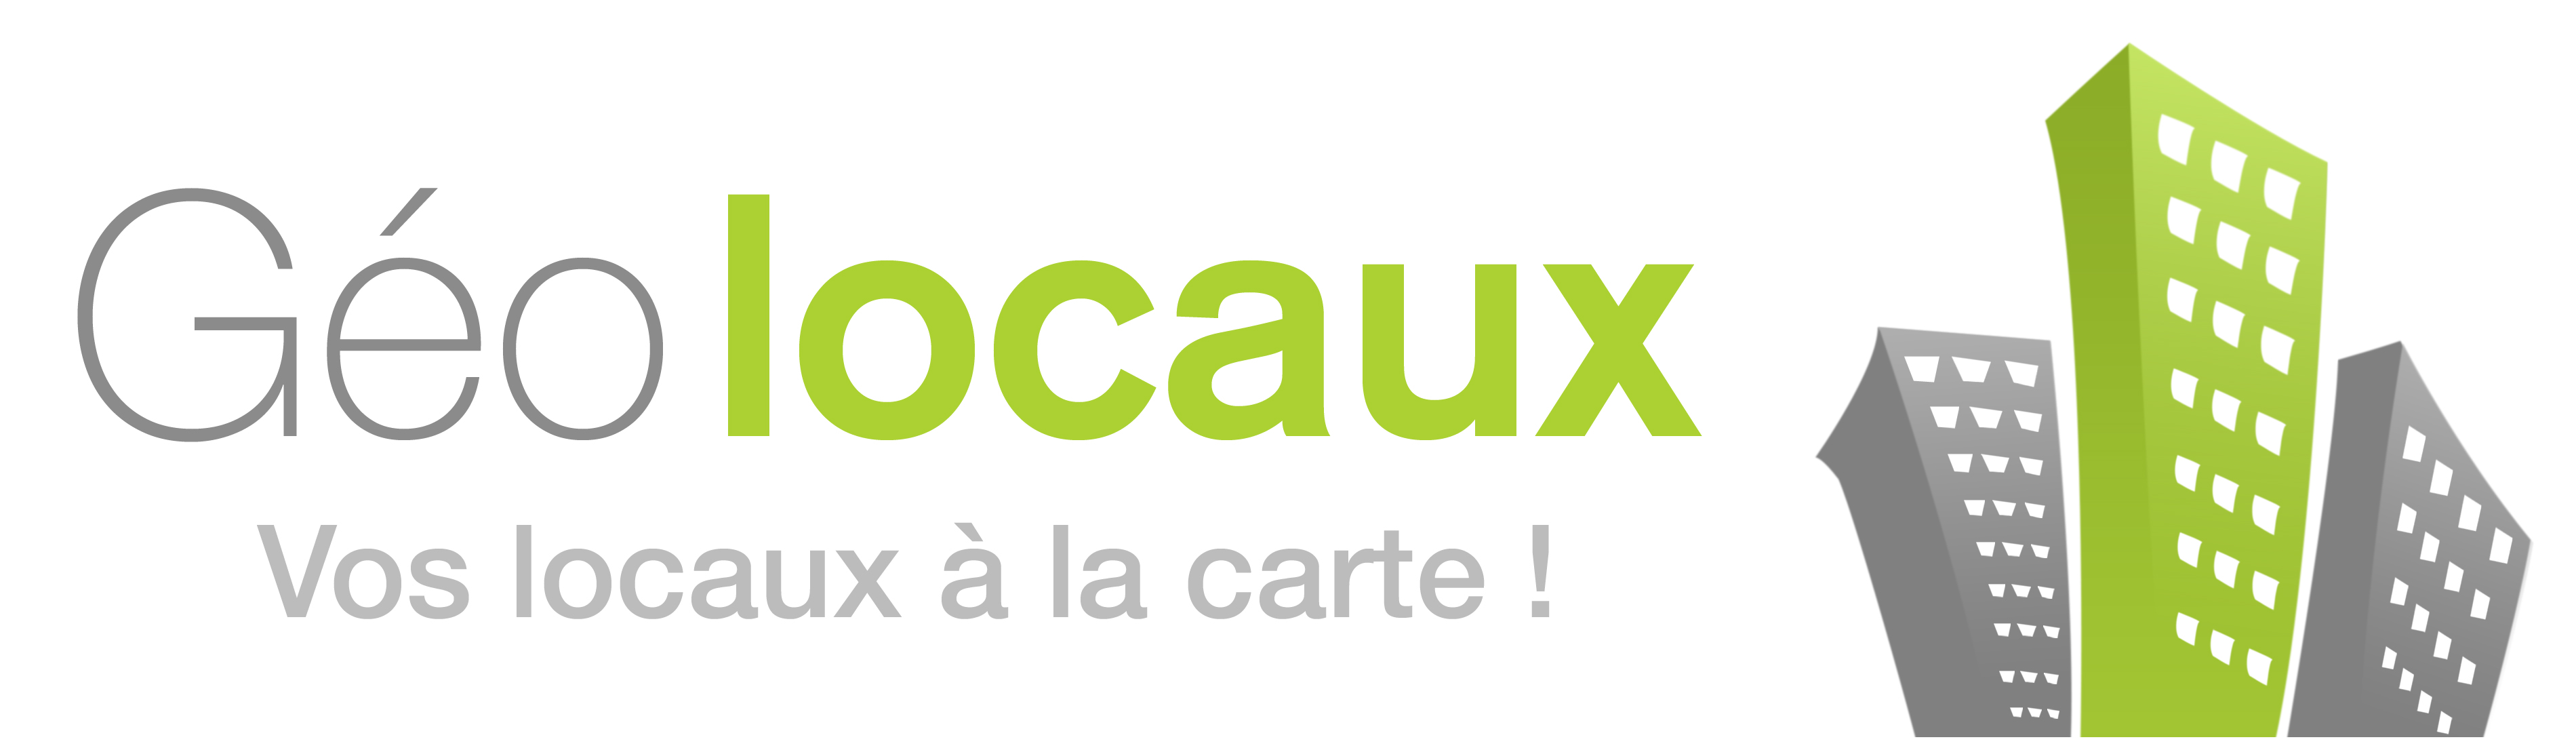 1 Geolocaux logo officiel